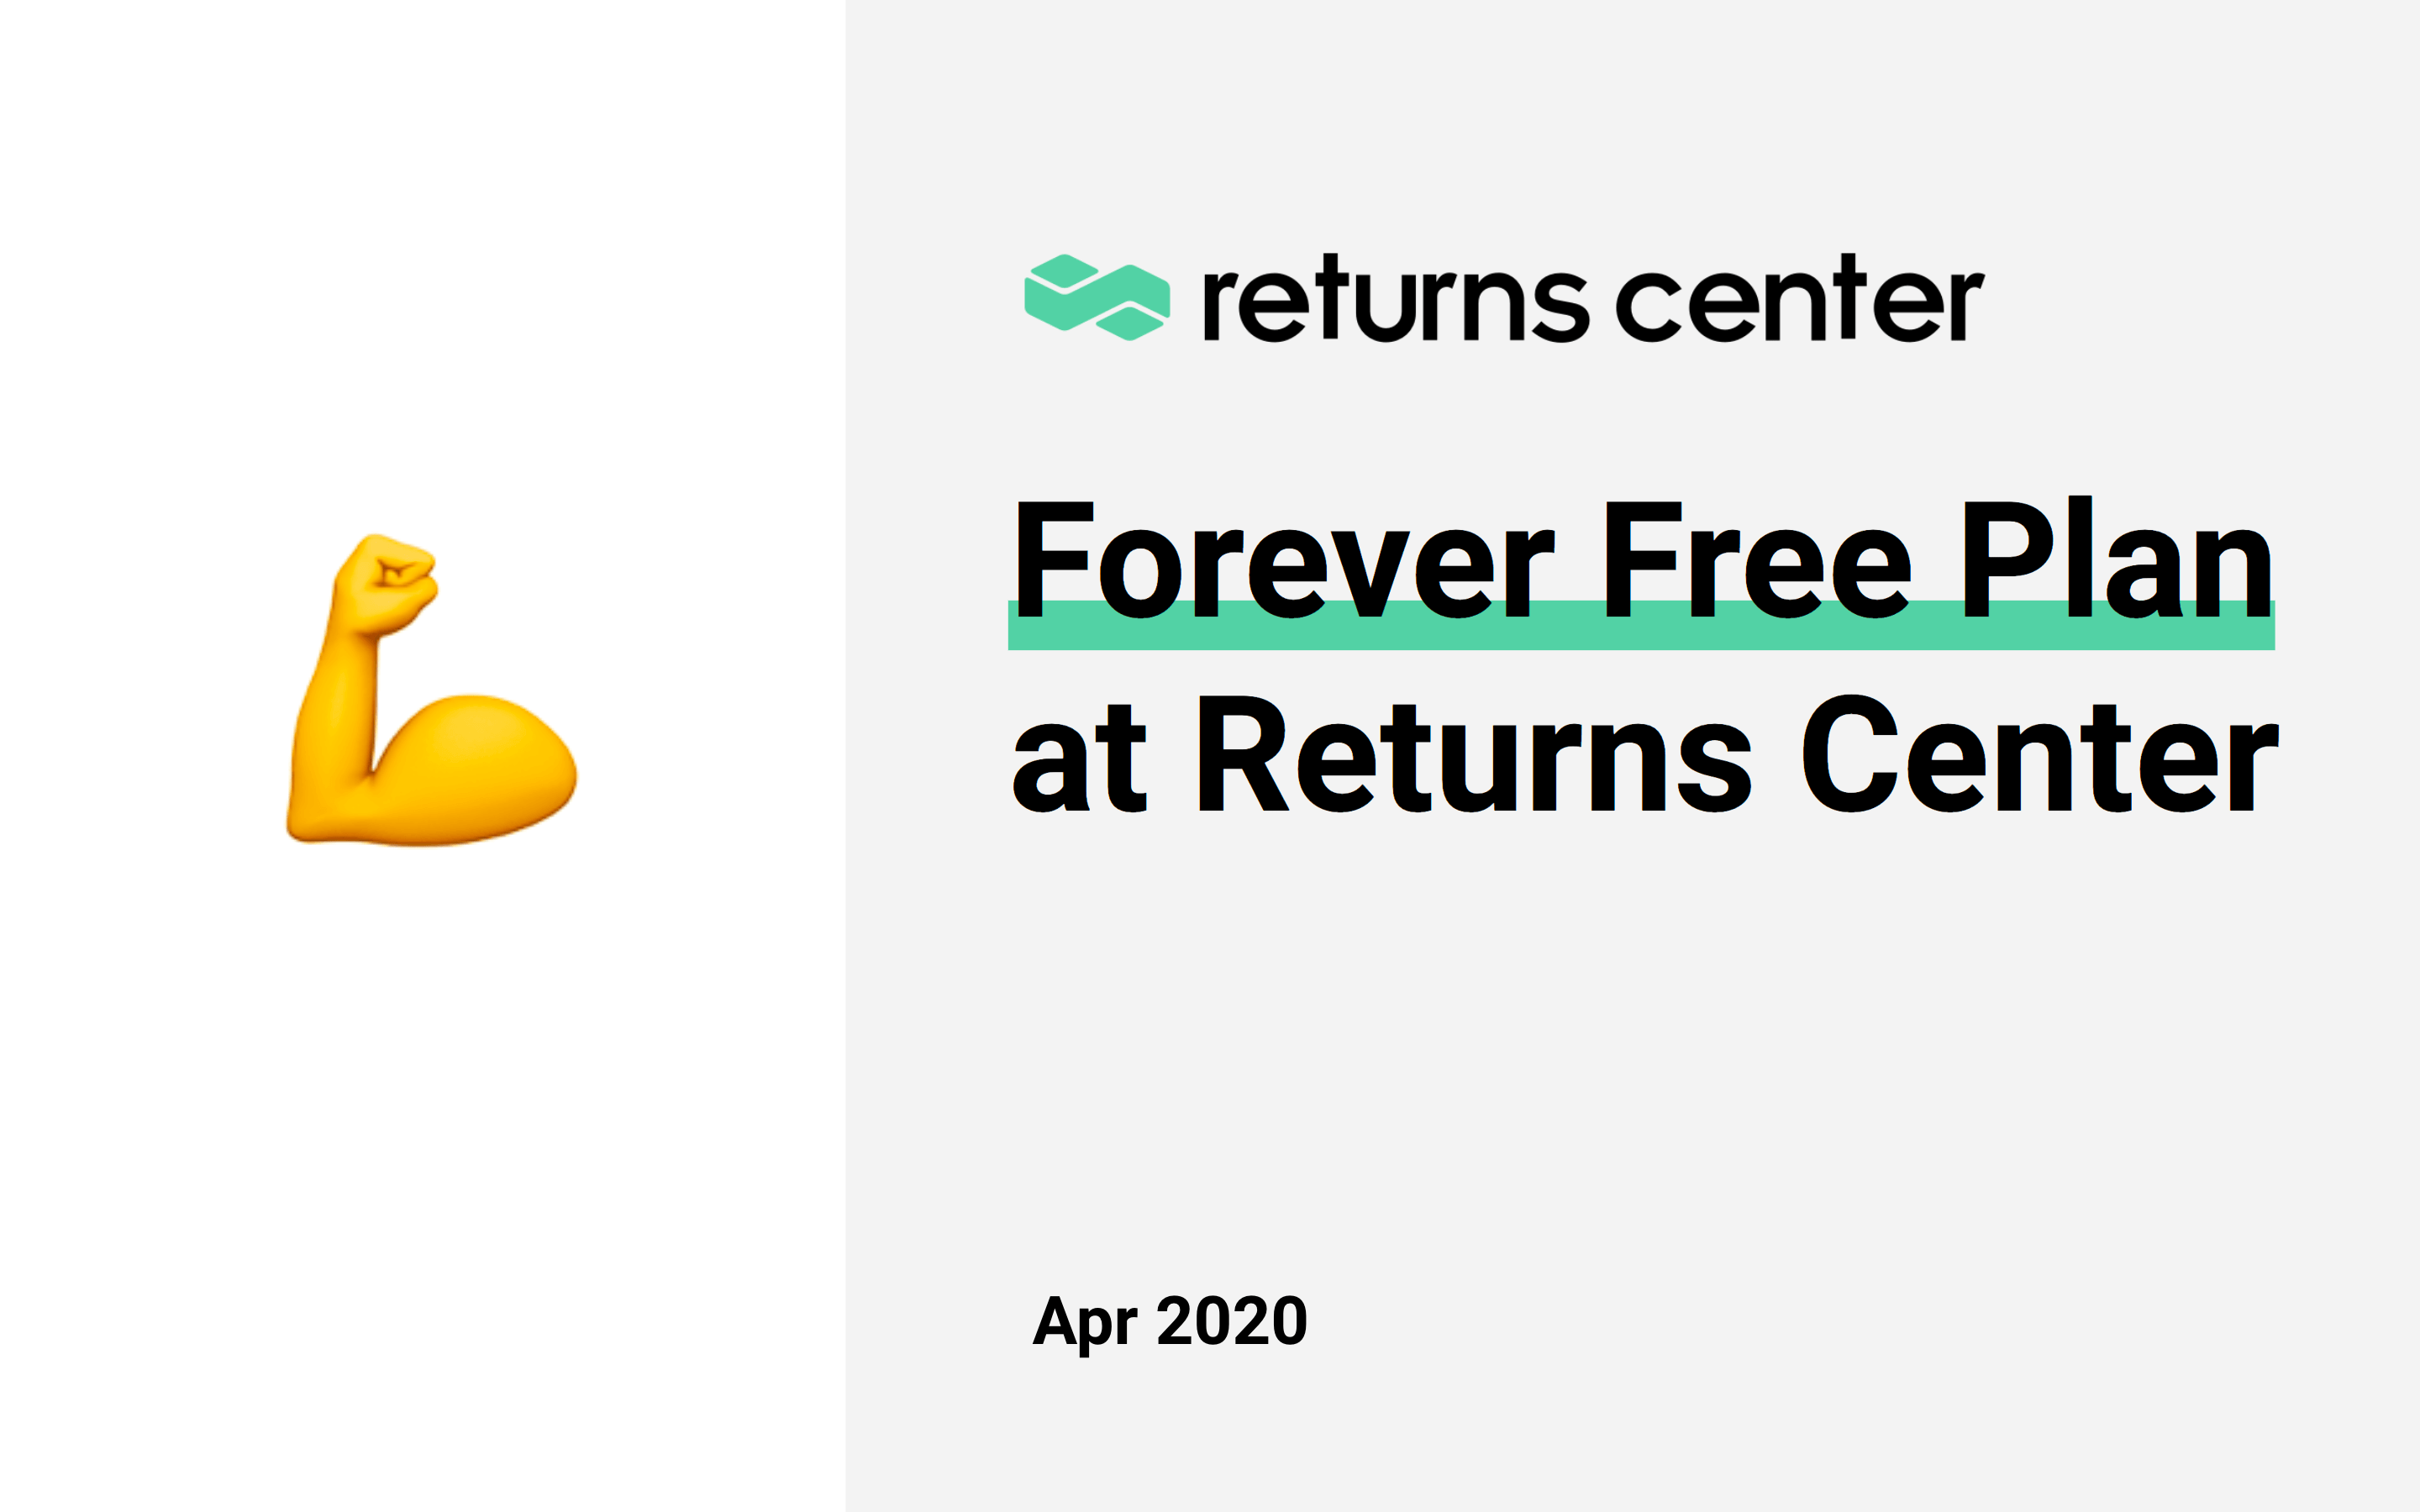 Introducing Returns Center's Forever Free Plan (COVID-19 response)